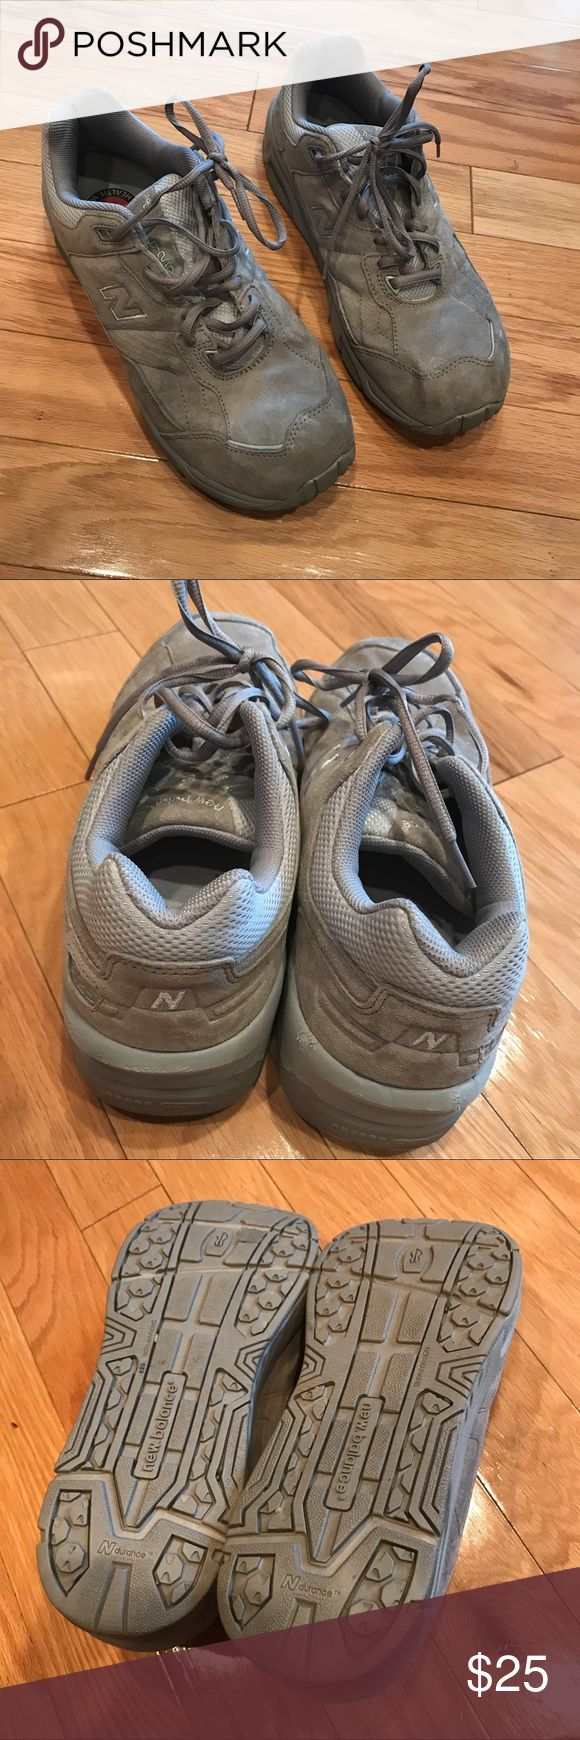 Men's New Balance Walking Shoe Men's New Balance Walking Shoe, Size 11 4E, All suede uppers, Excellent condition - only worn a few times New Balance Shoes Sneakers